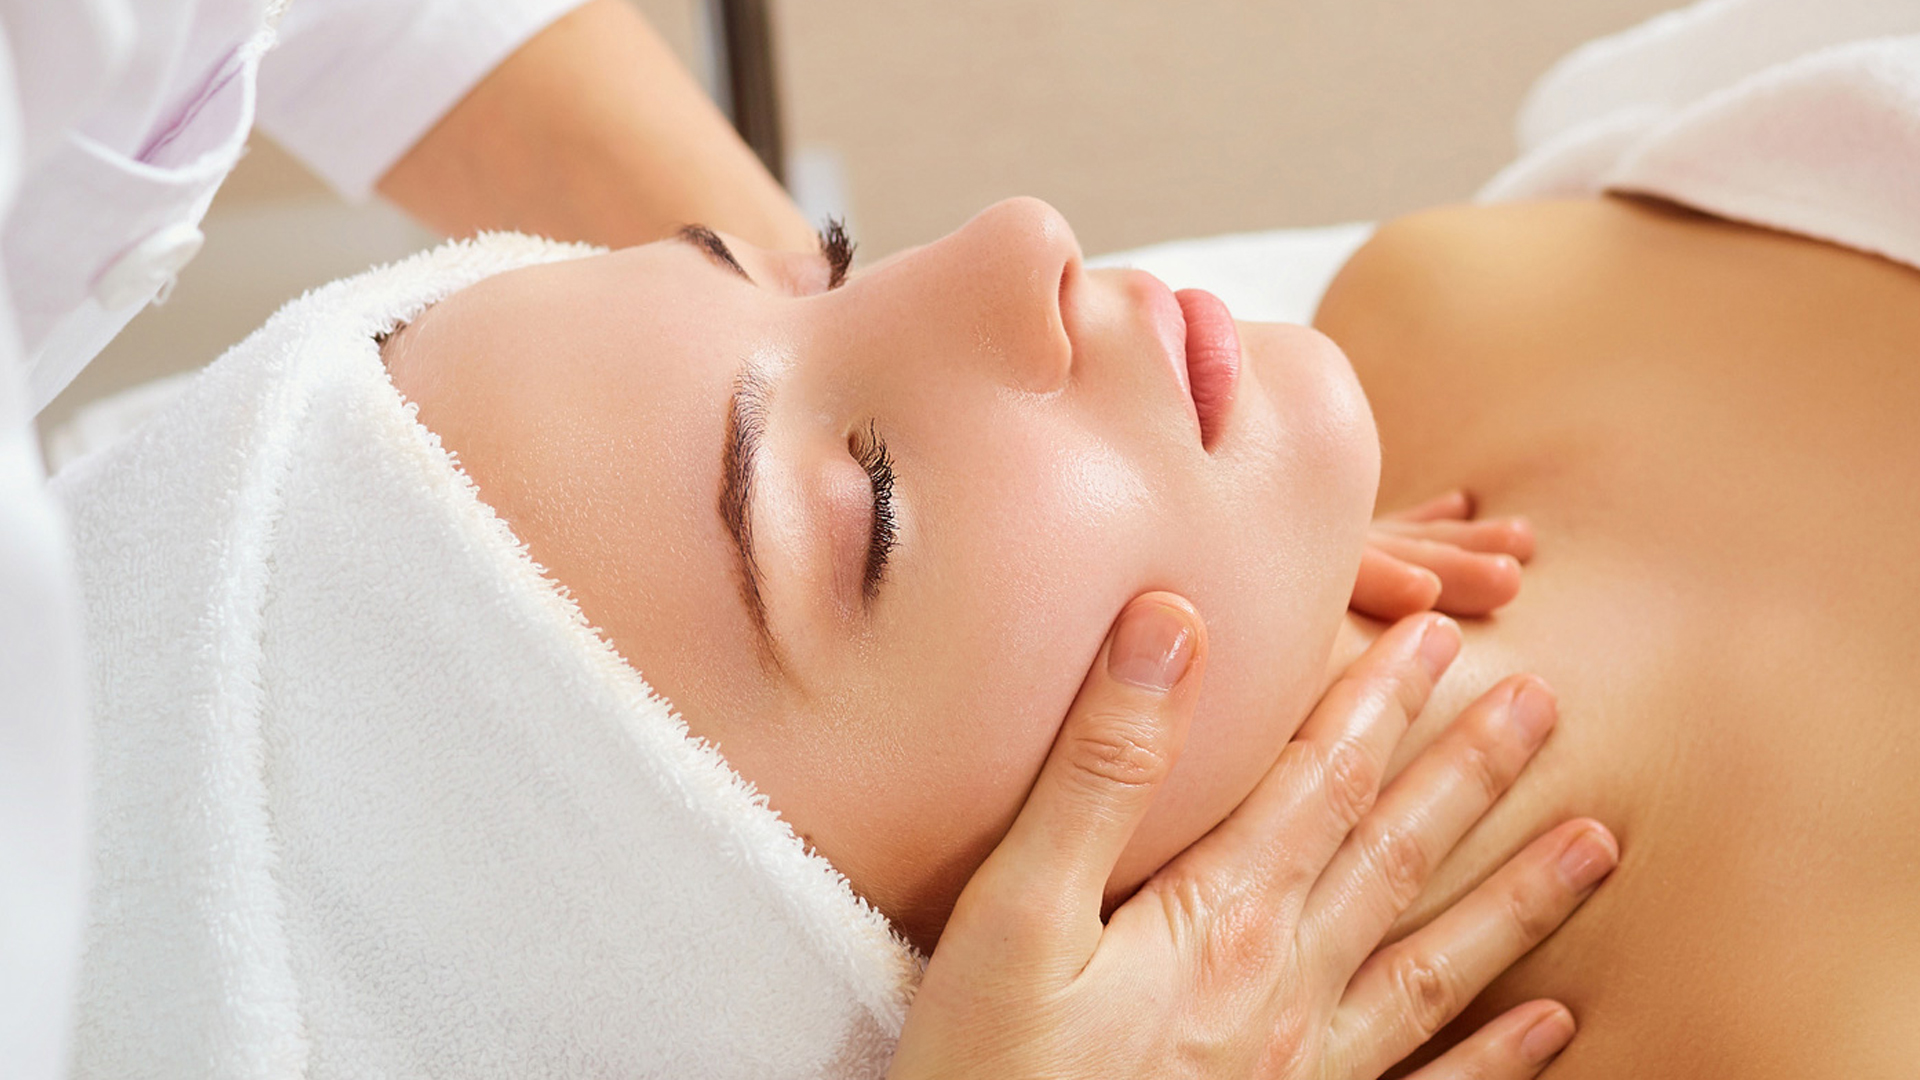 Facial & Massage Therapies